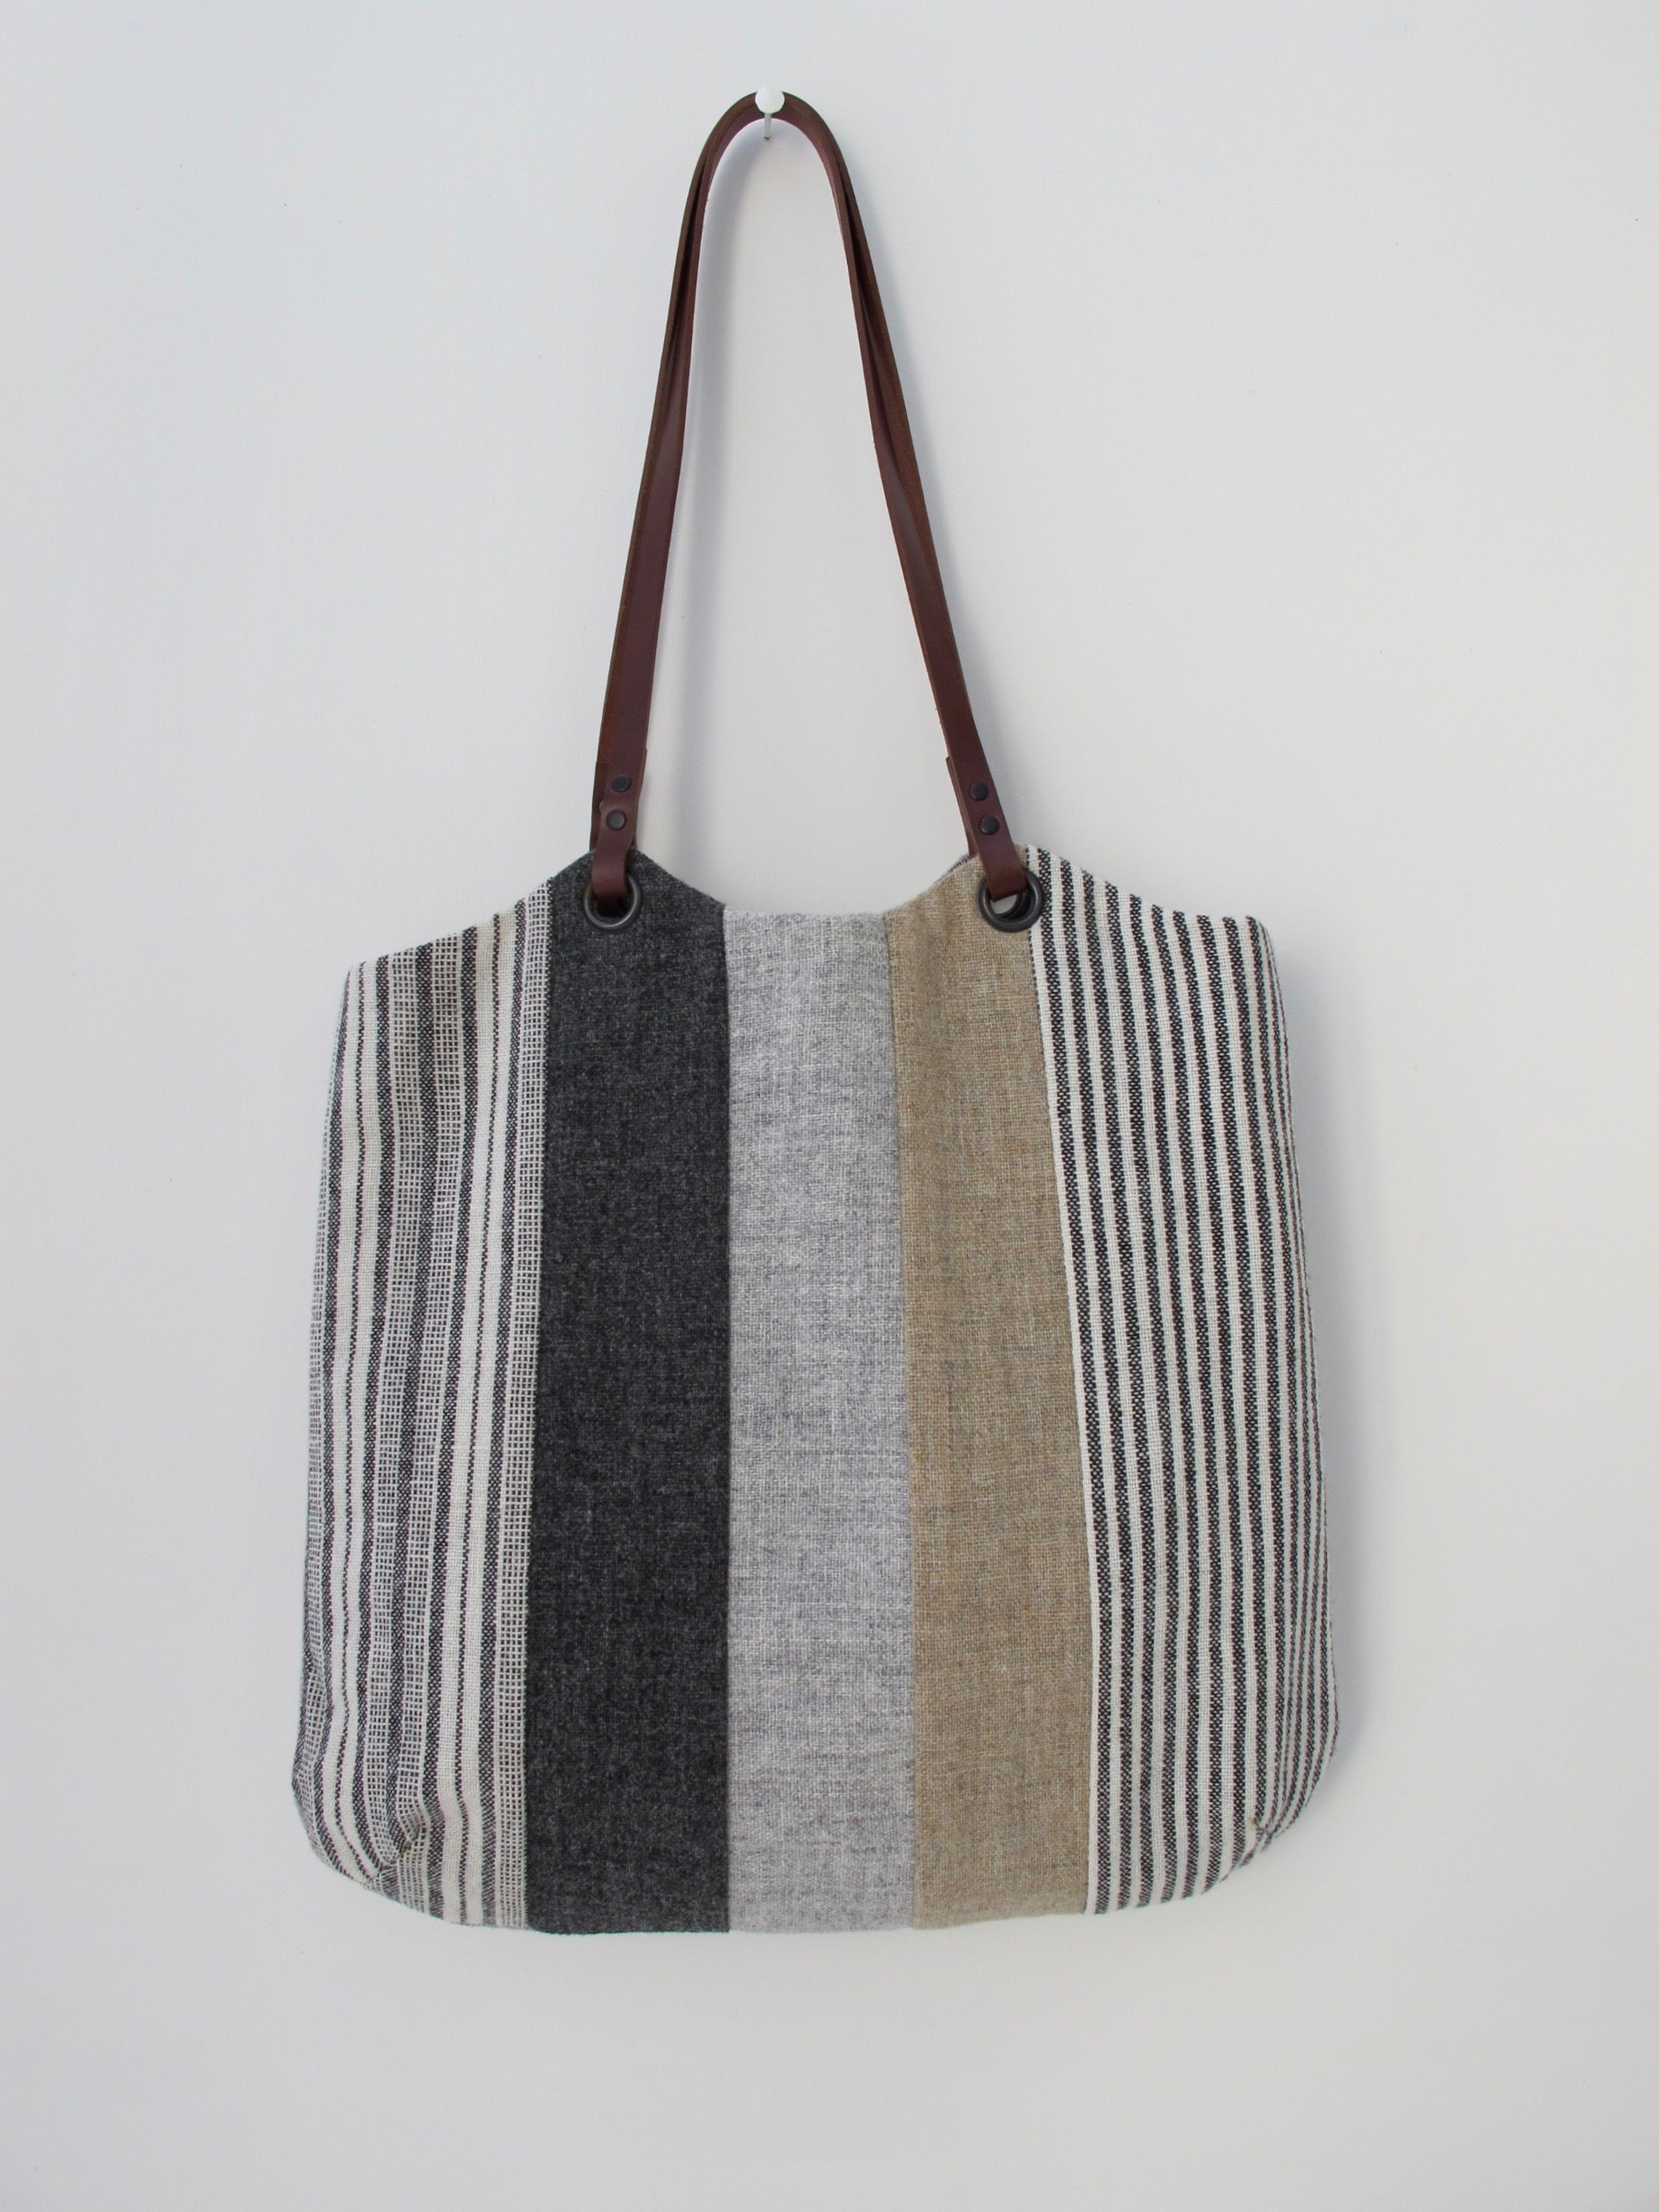 Patchwork Tote Bag - grey, straw & stripe